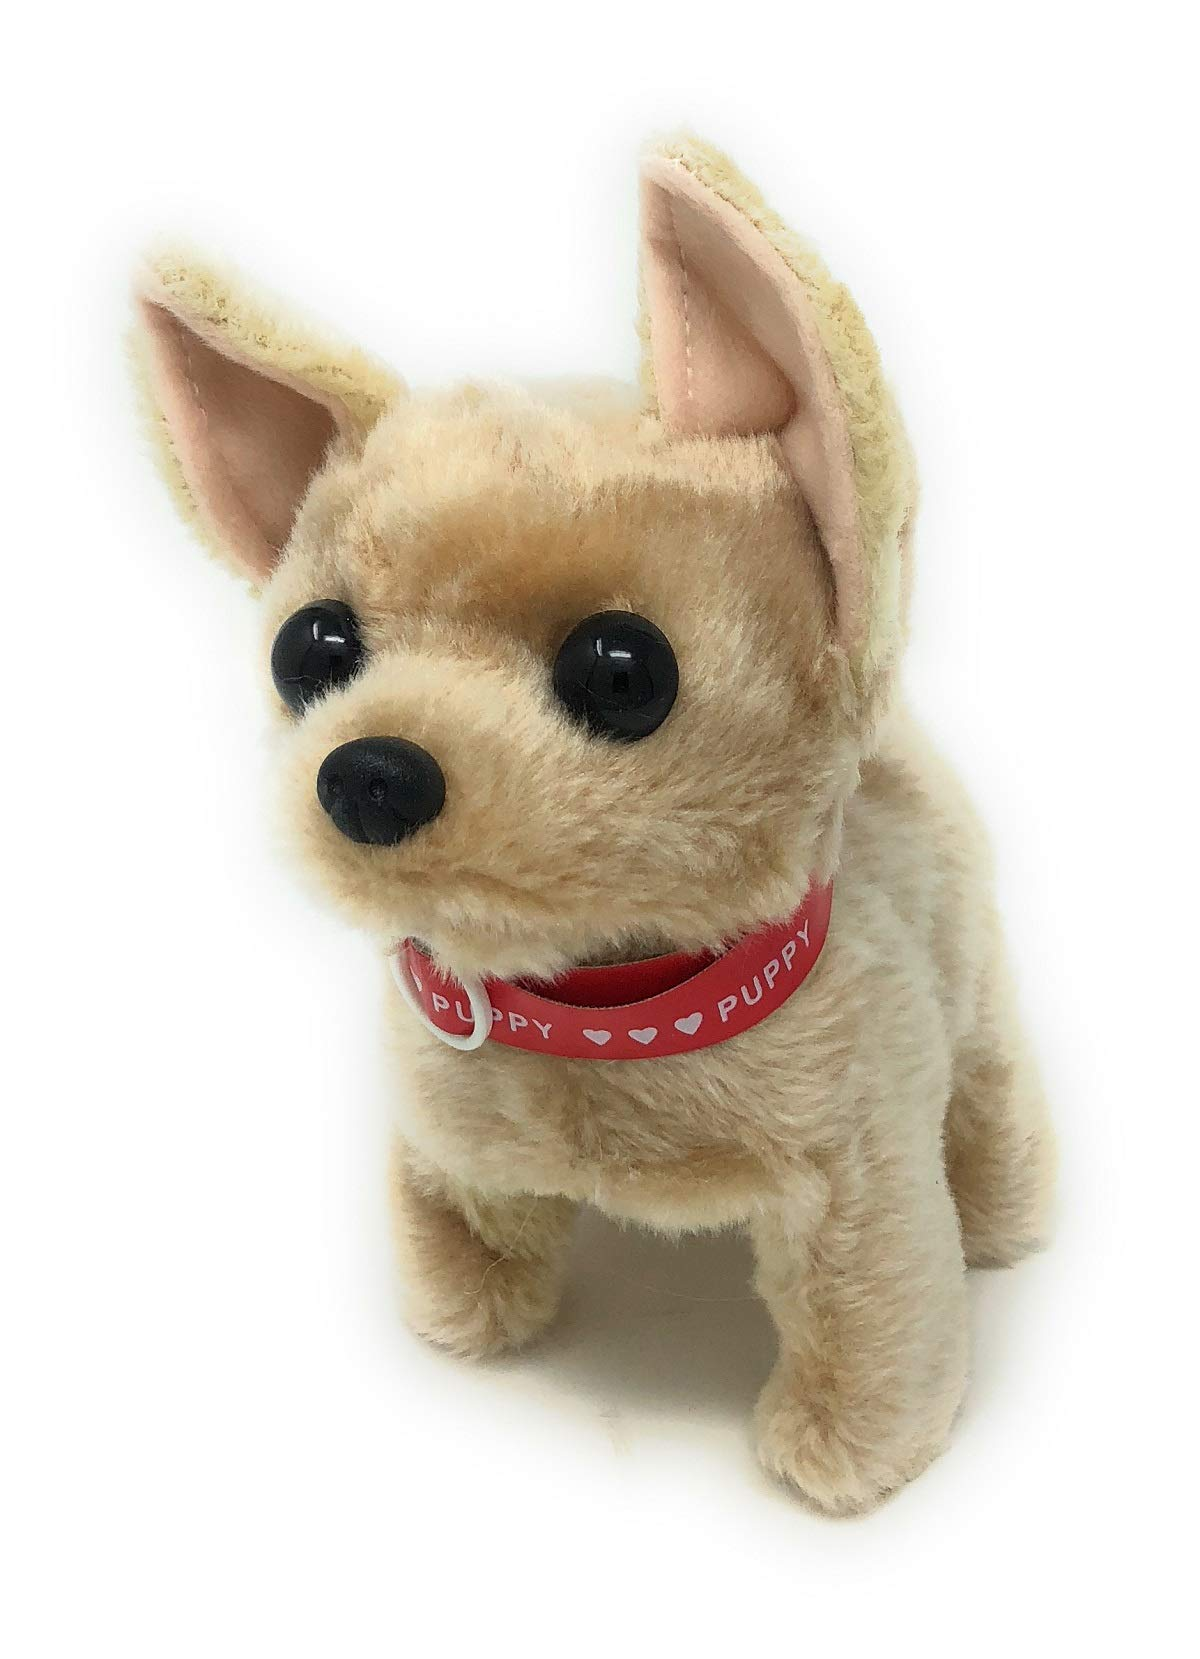 Walking Toy Puppy | Battery Operated Walking, Tail-Wagging and Mechanical Barking Electronic PIush Animal Dog by JoyABit (Image #1)